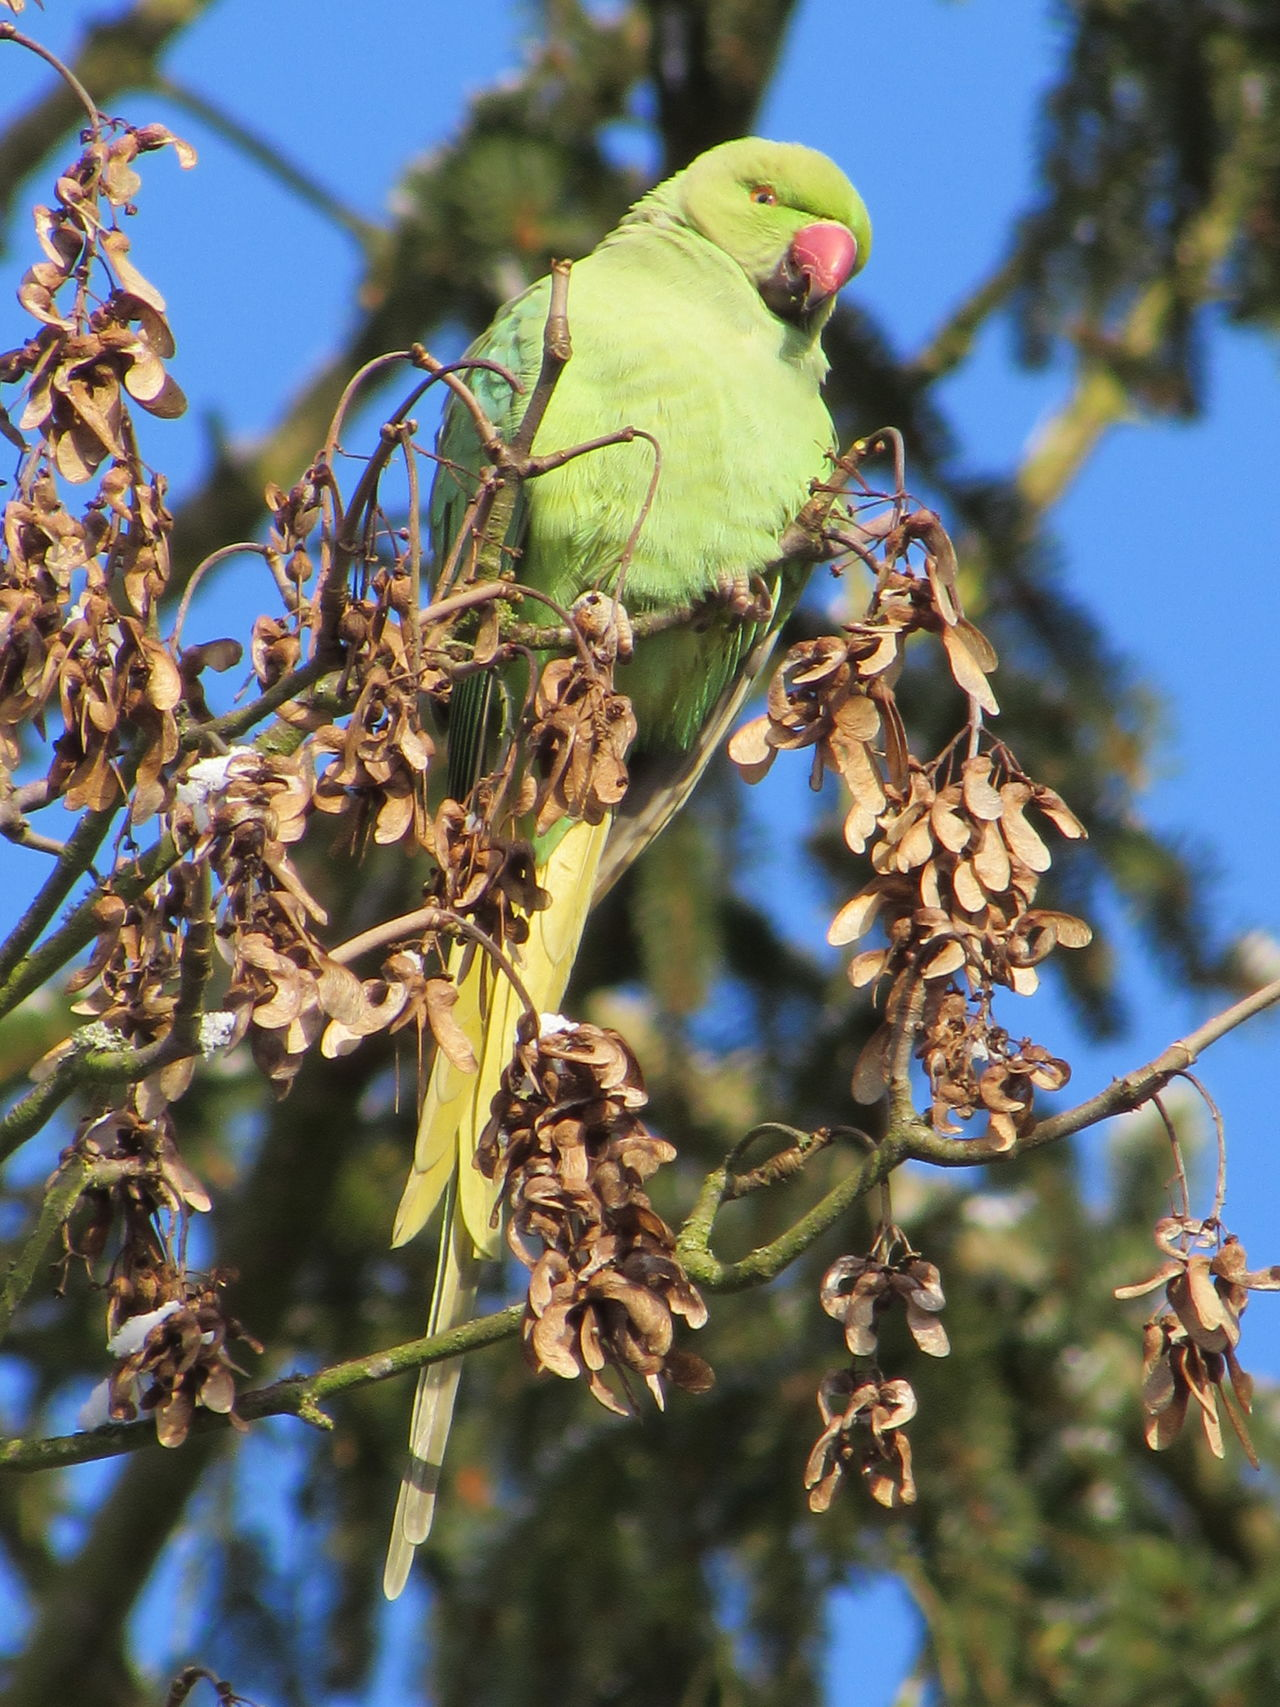 Another shot of our beautiful city parakeets Adapted To The City Animal Themes Animals In The Wild Beauty In Nature Bird Bird Photography Birds Branch Close-up Day Eye4photography  EyeEm Nature Lover Leaf Nature One Animal Outdoors Perching Sky Taking Photos Tree Walking Around